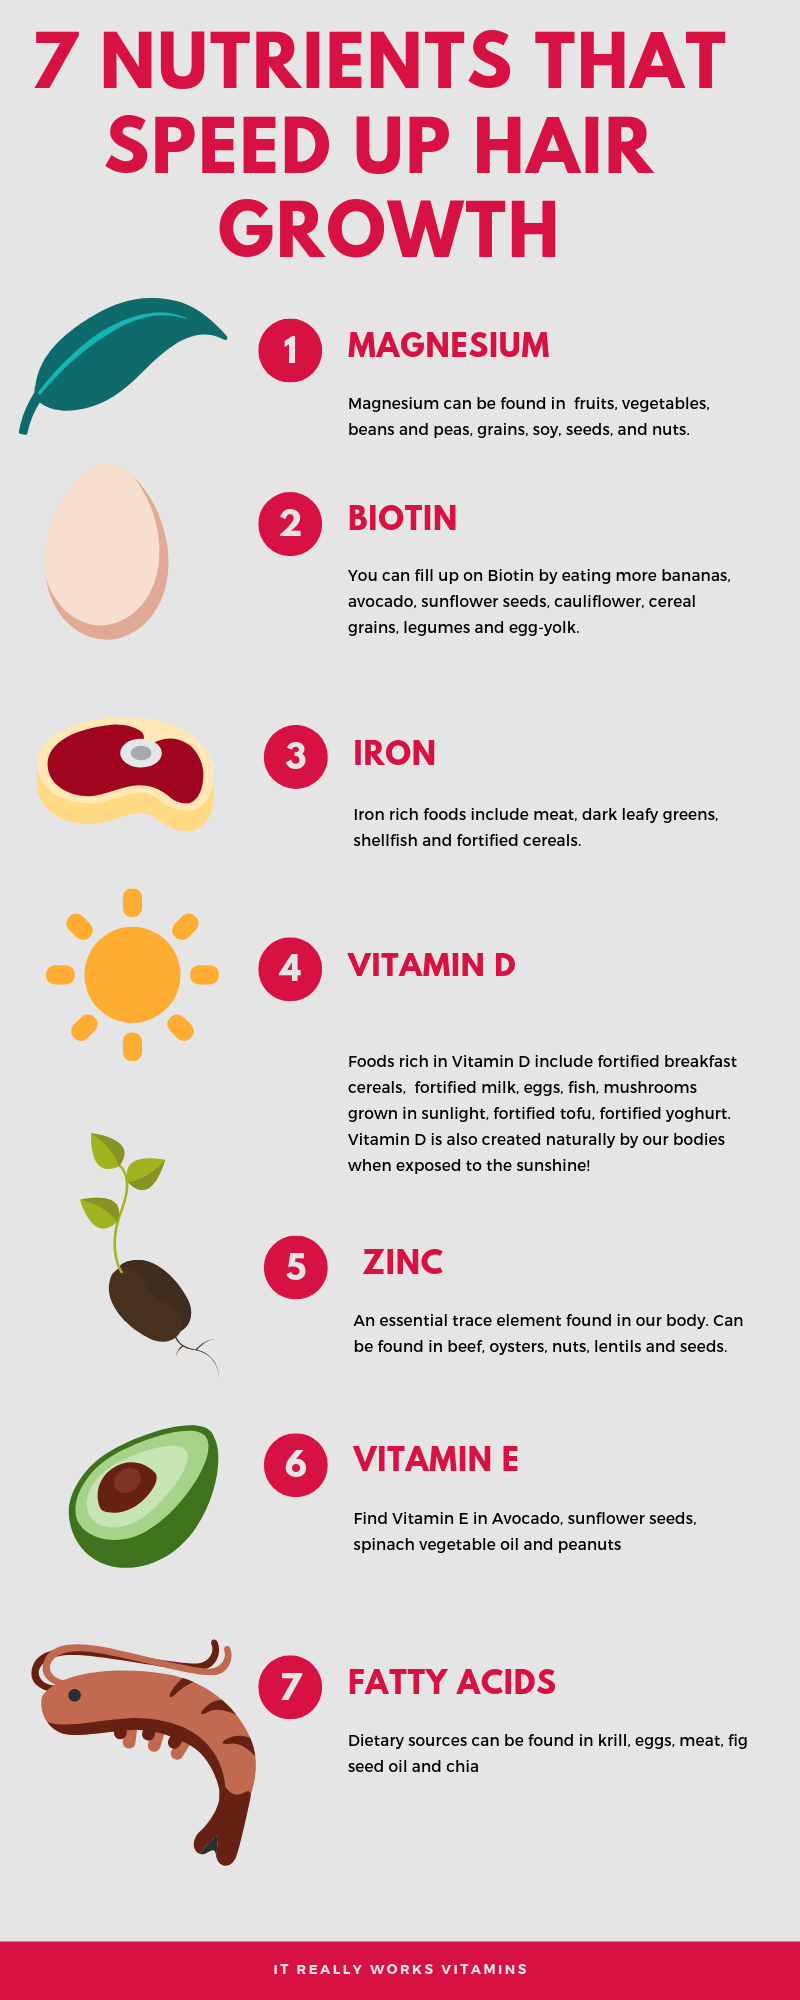 64 Vitamins That Can Make Your Hair Grow Faster  by It Really